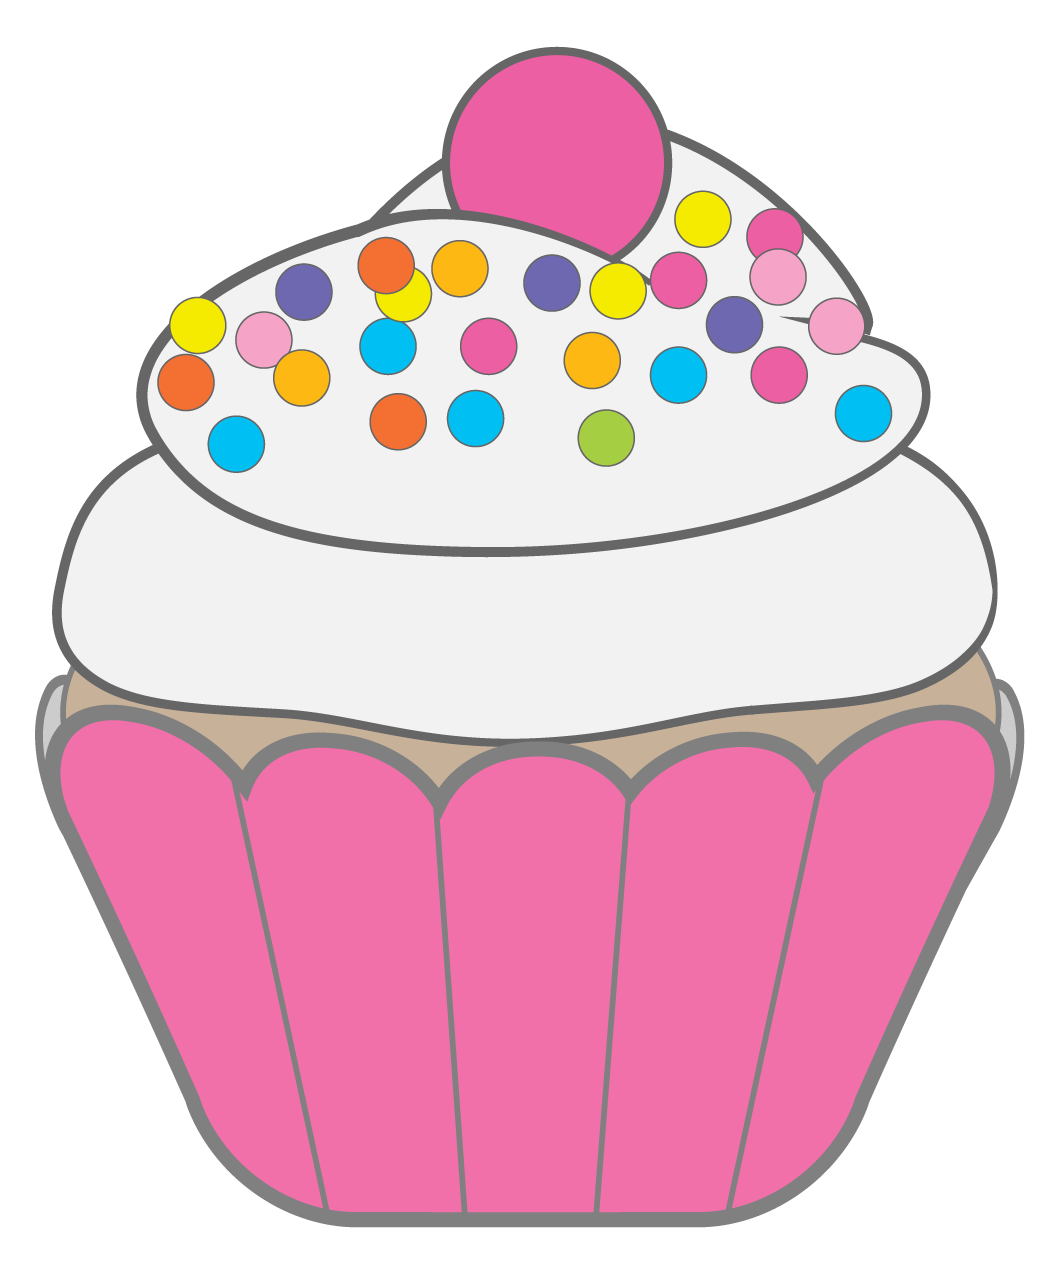 jpg royalty free library Image of Candyland Clipart